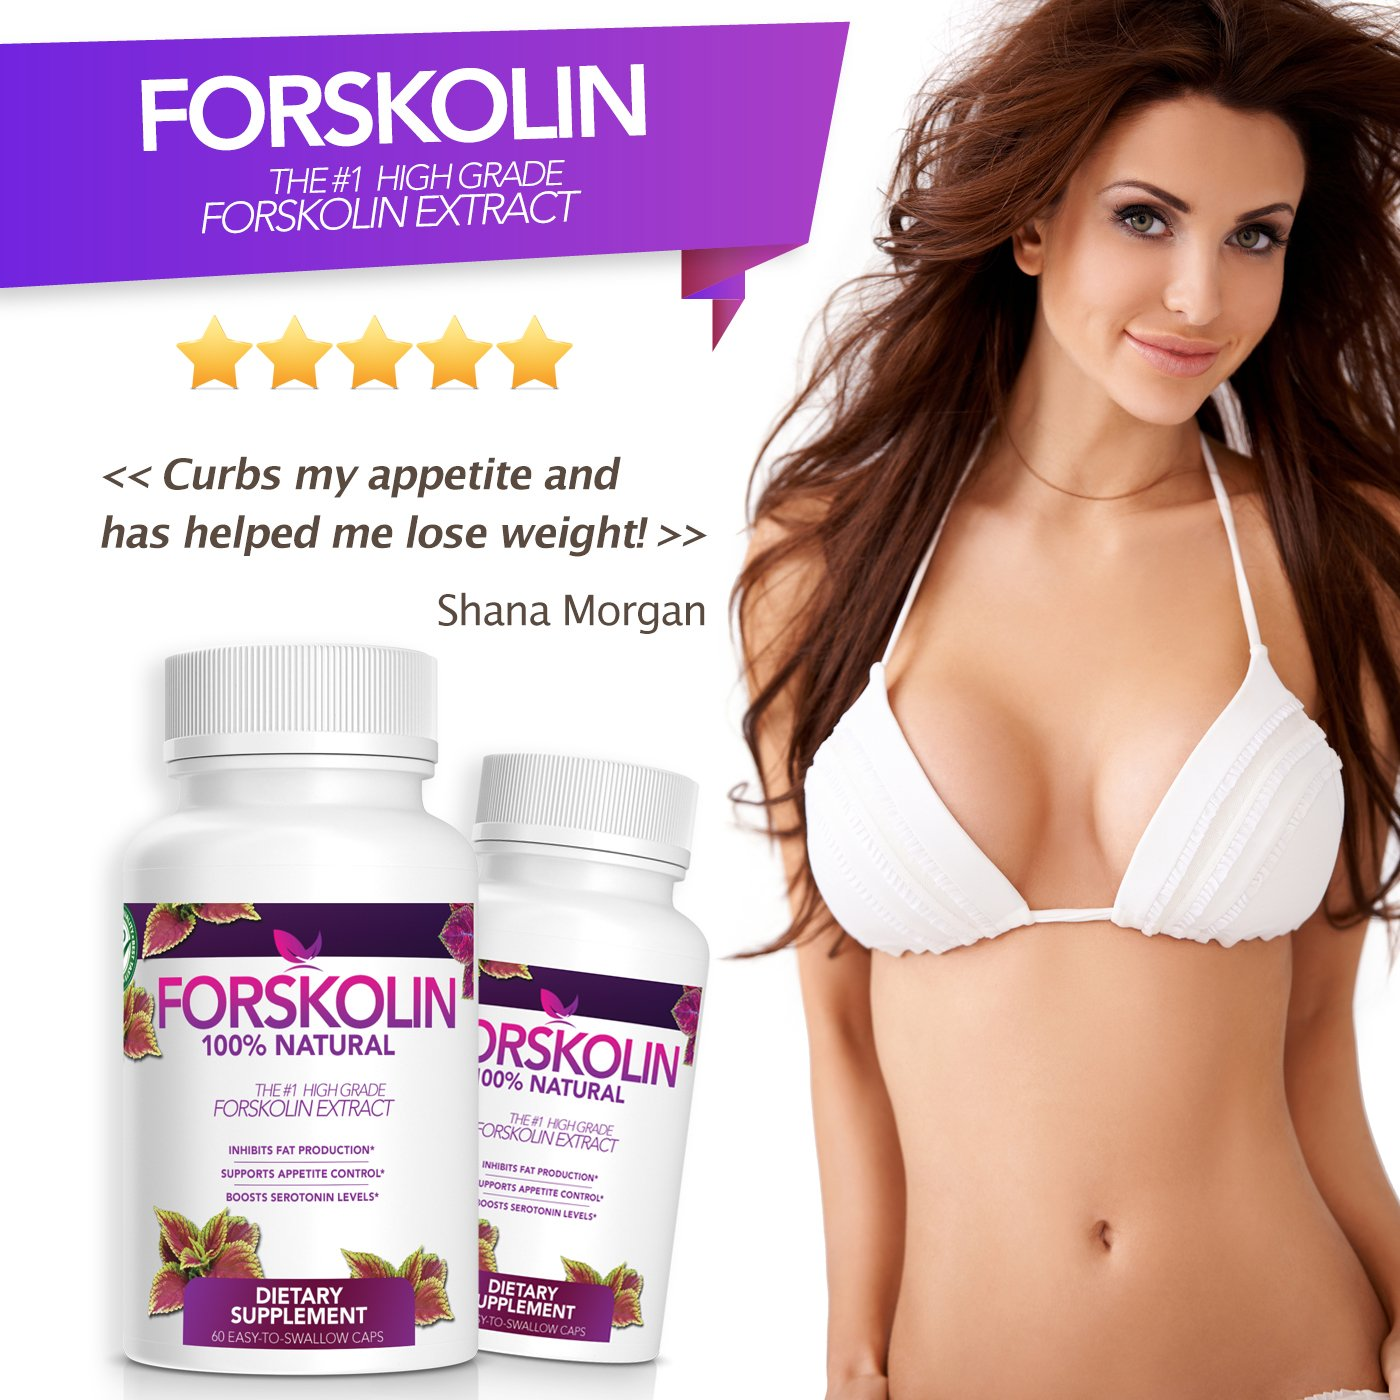 100 Pure Forskolin Extract – 1 Weight Loss Supplement – 1 Month Supply – Made in USA Quality Product – Natural Appetite Suppressant Weight Loss – Order Risk Free